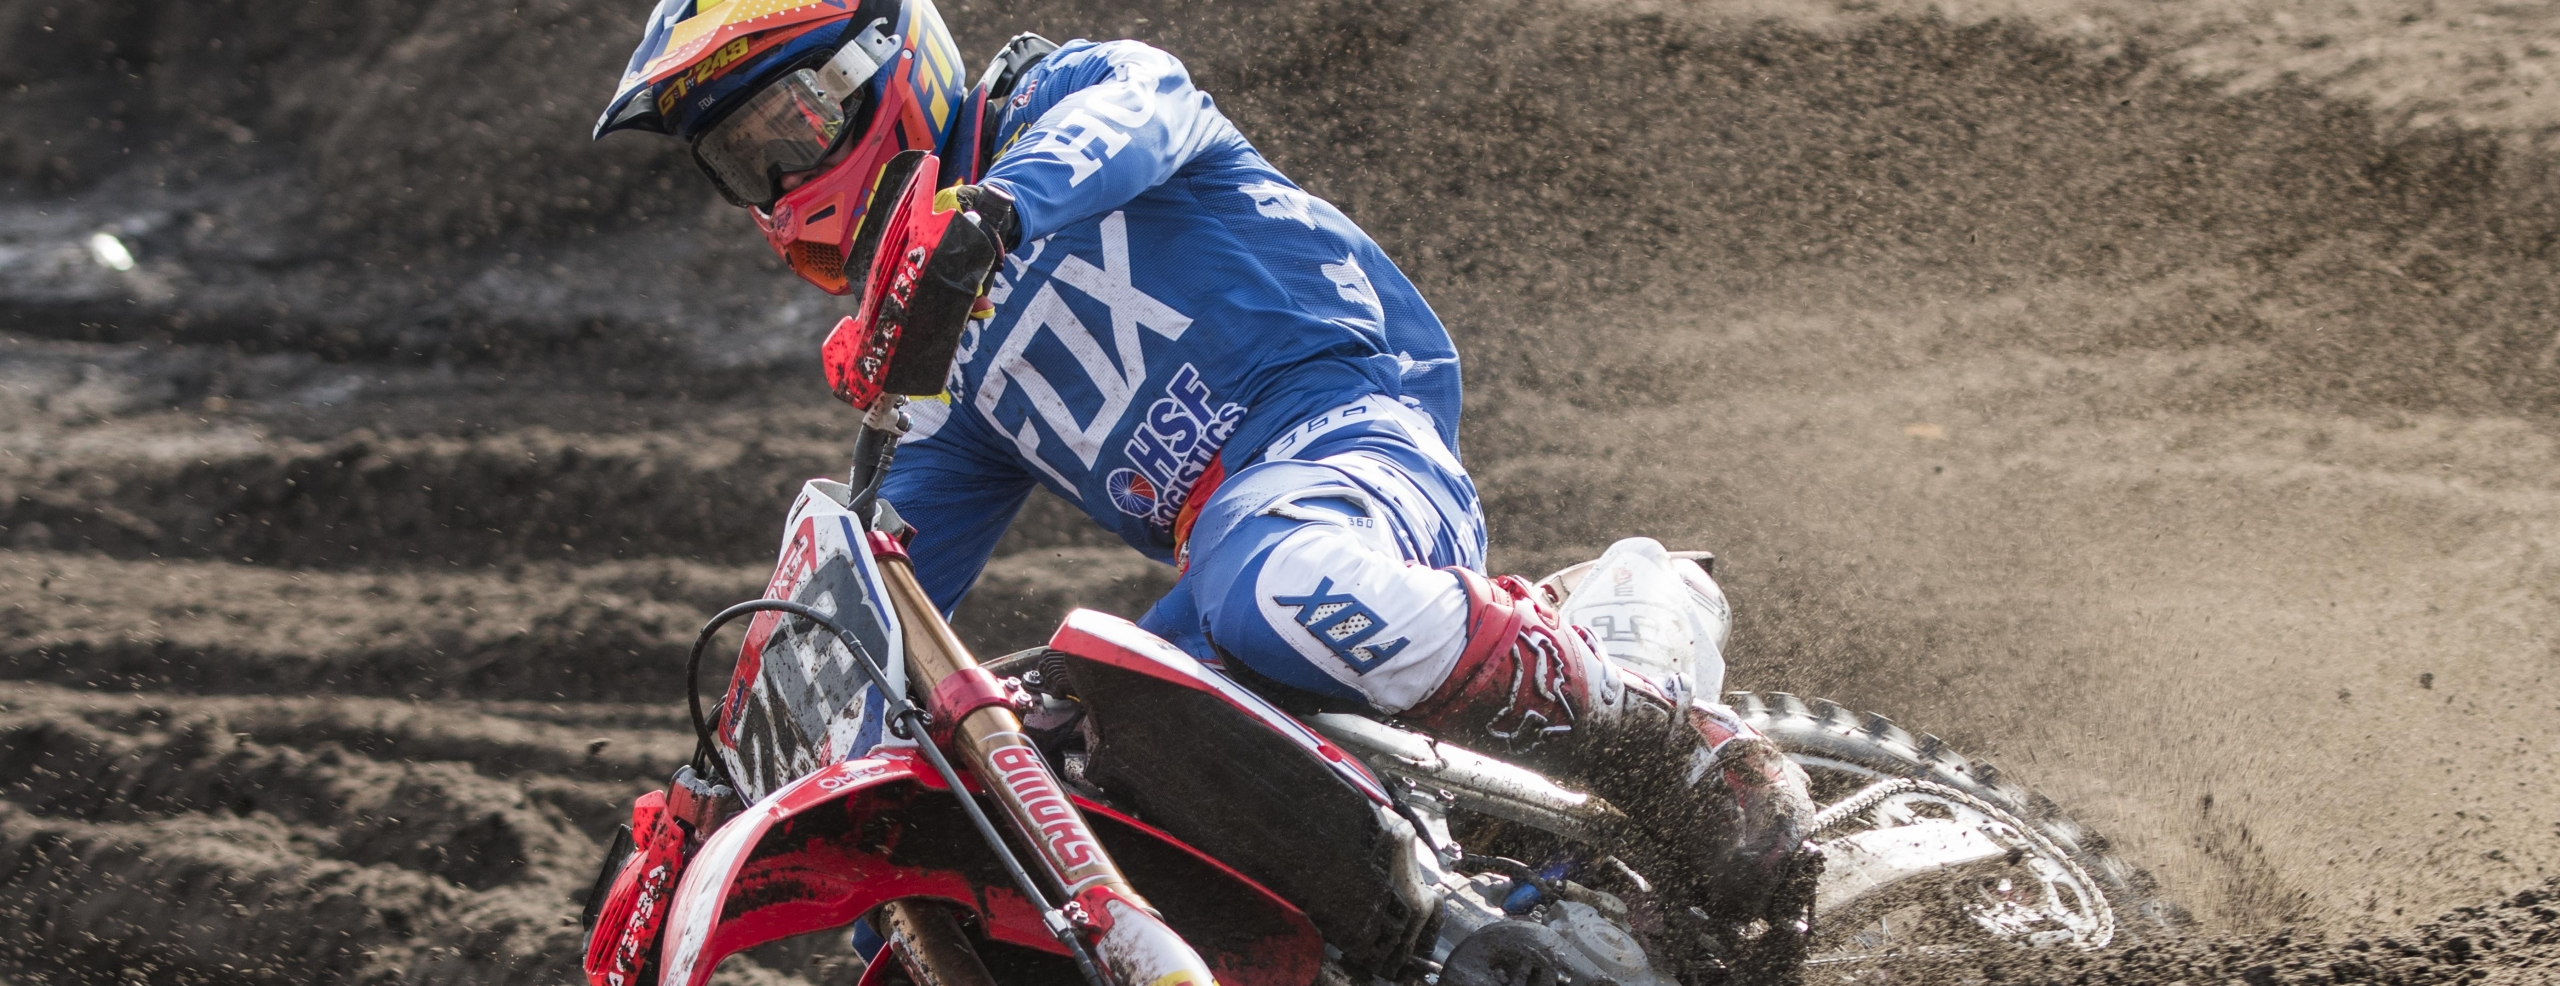 Gajser and Vlaanderen looking for more at RedSand